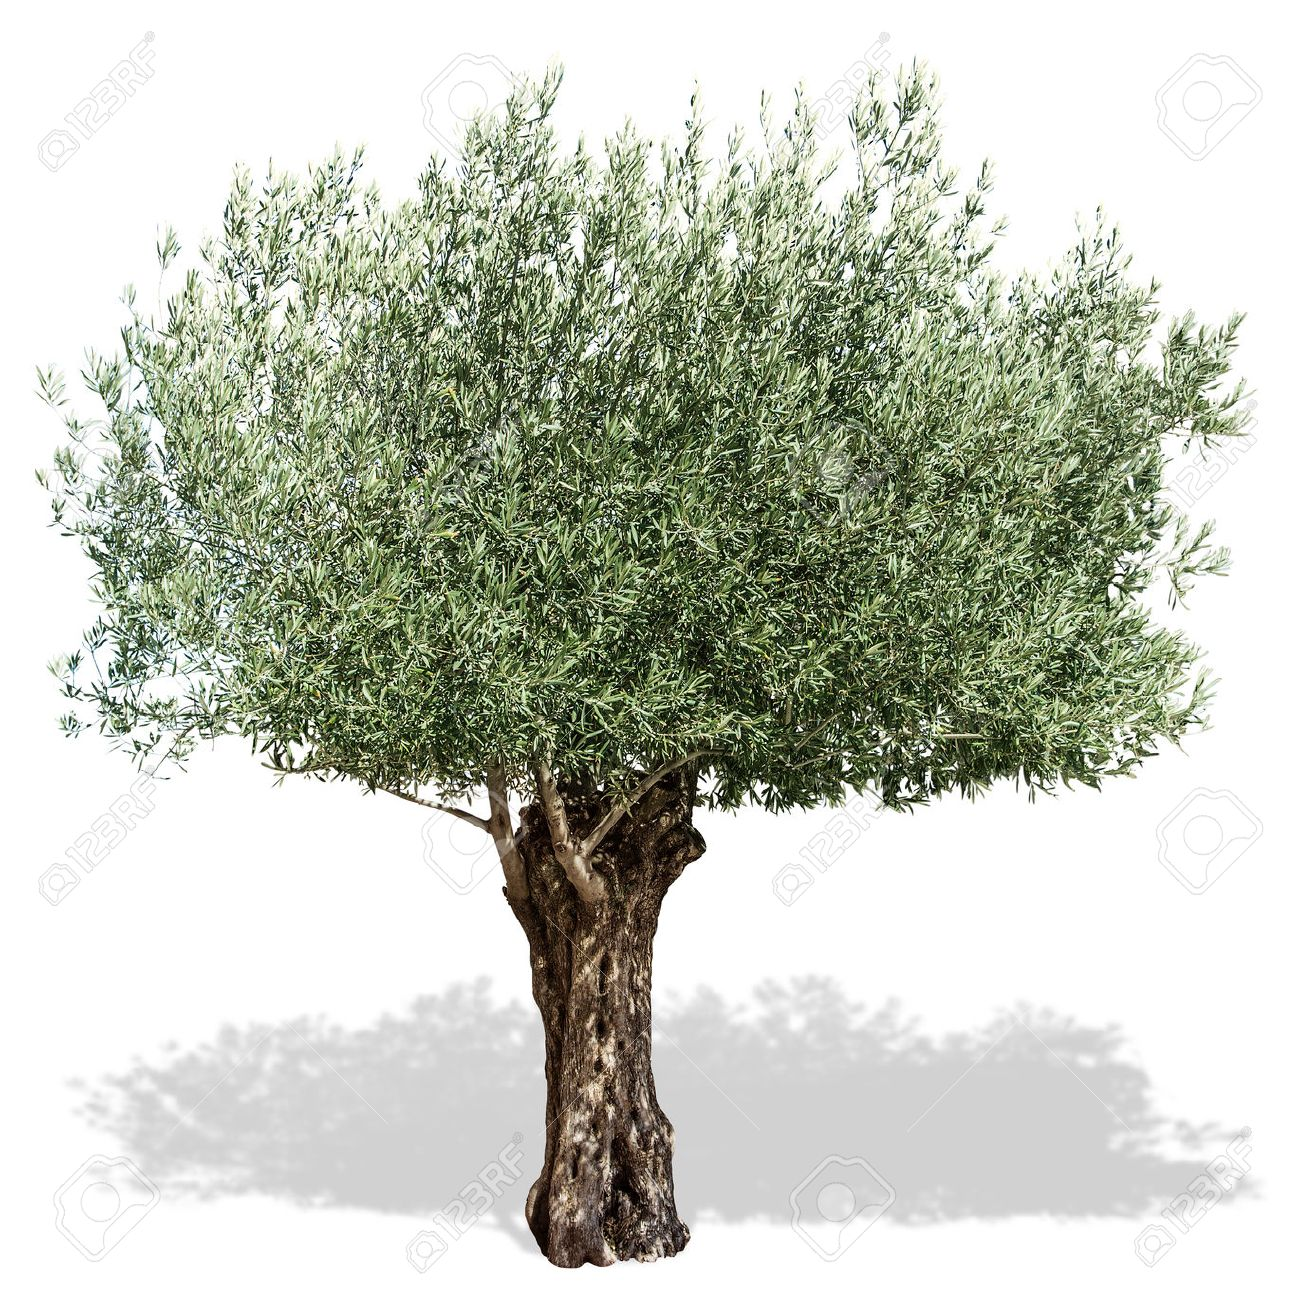 Olive tree  on a white background. Clipping path. Standard-Bild - 55719721